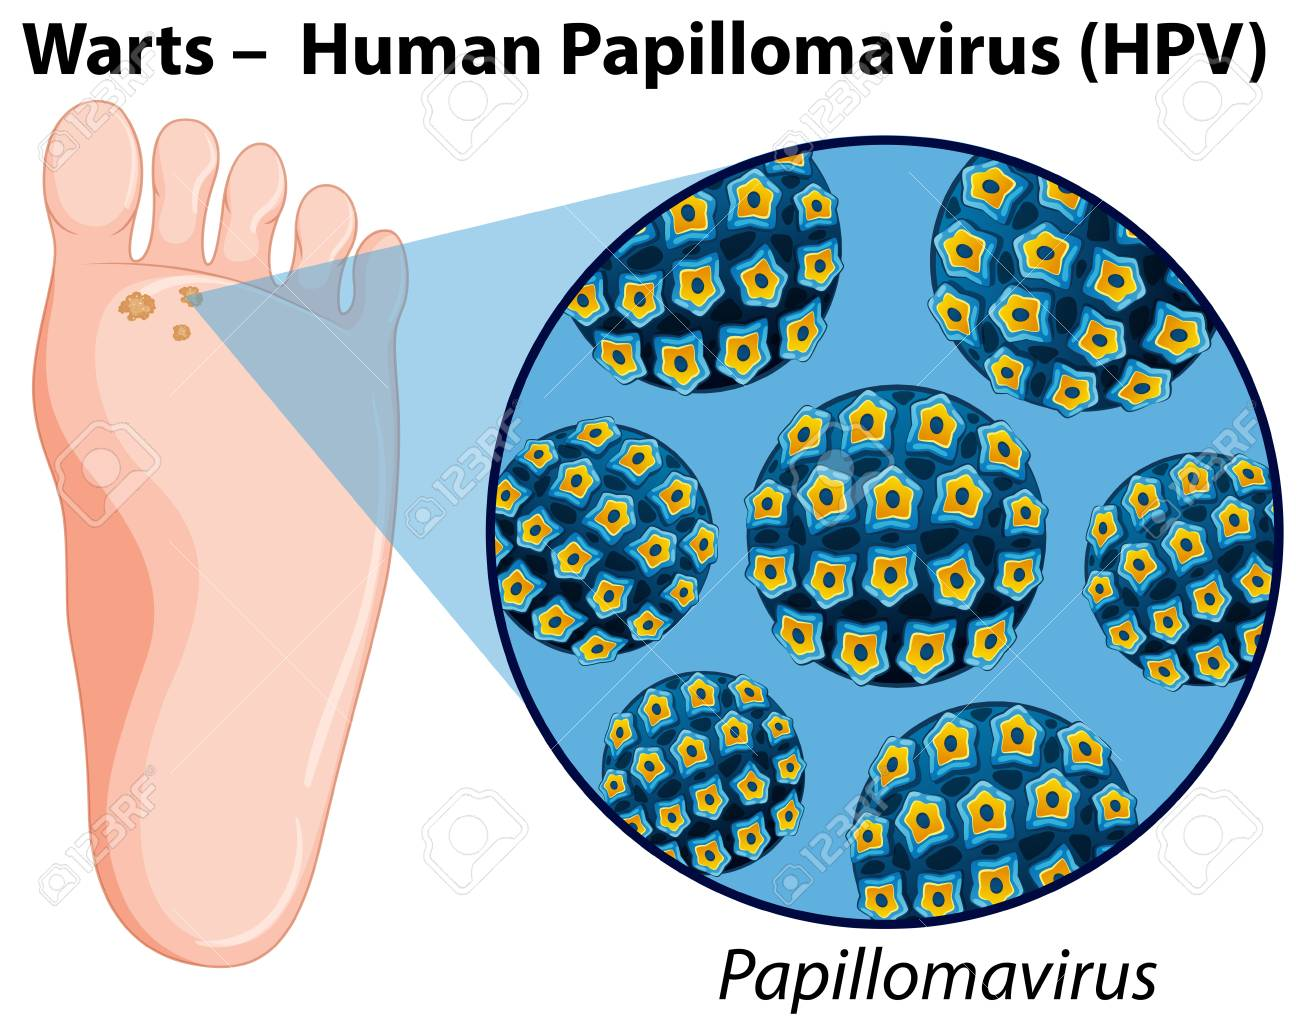 Hpv virus diagram - Human papillomavirus diagram